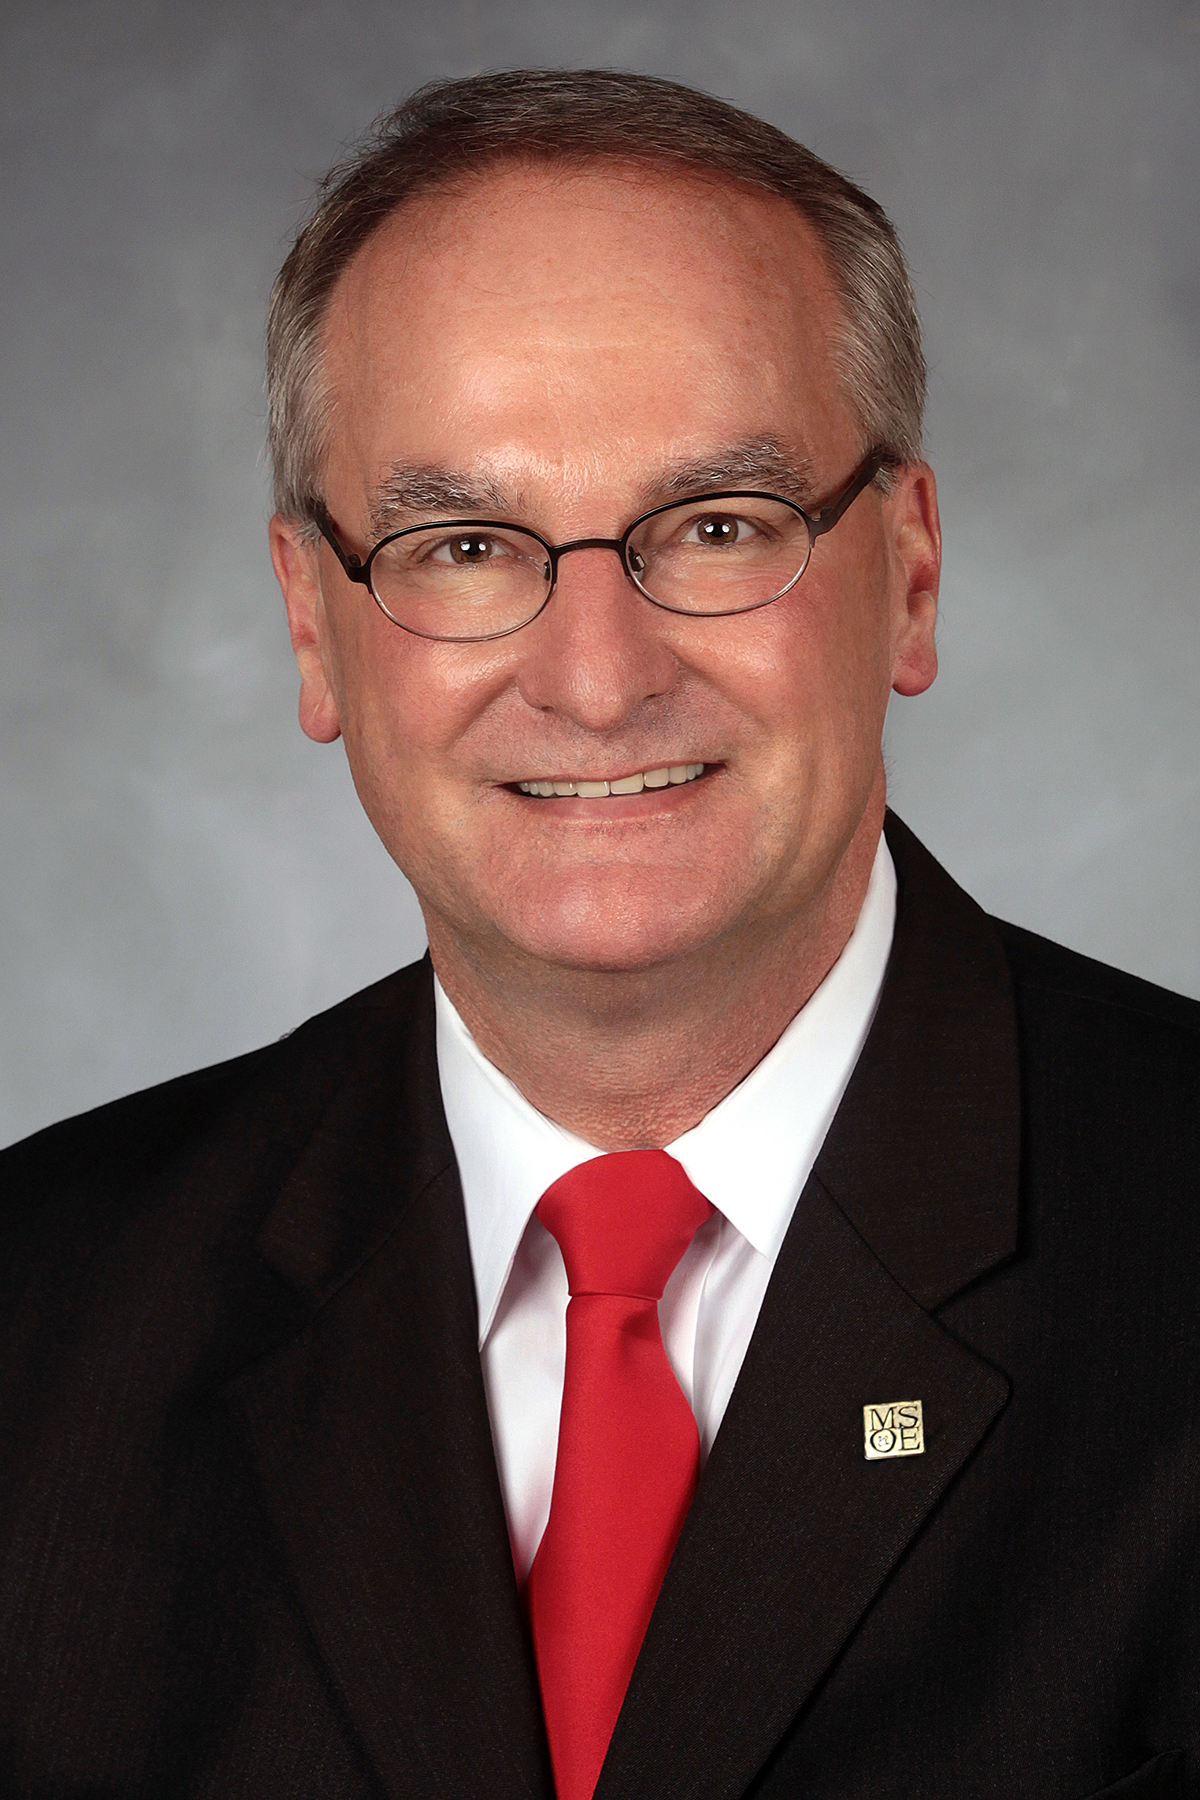 MSOE President John Y. Walz, Ph.D. to be inaugurated April 29